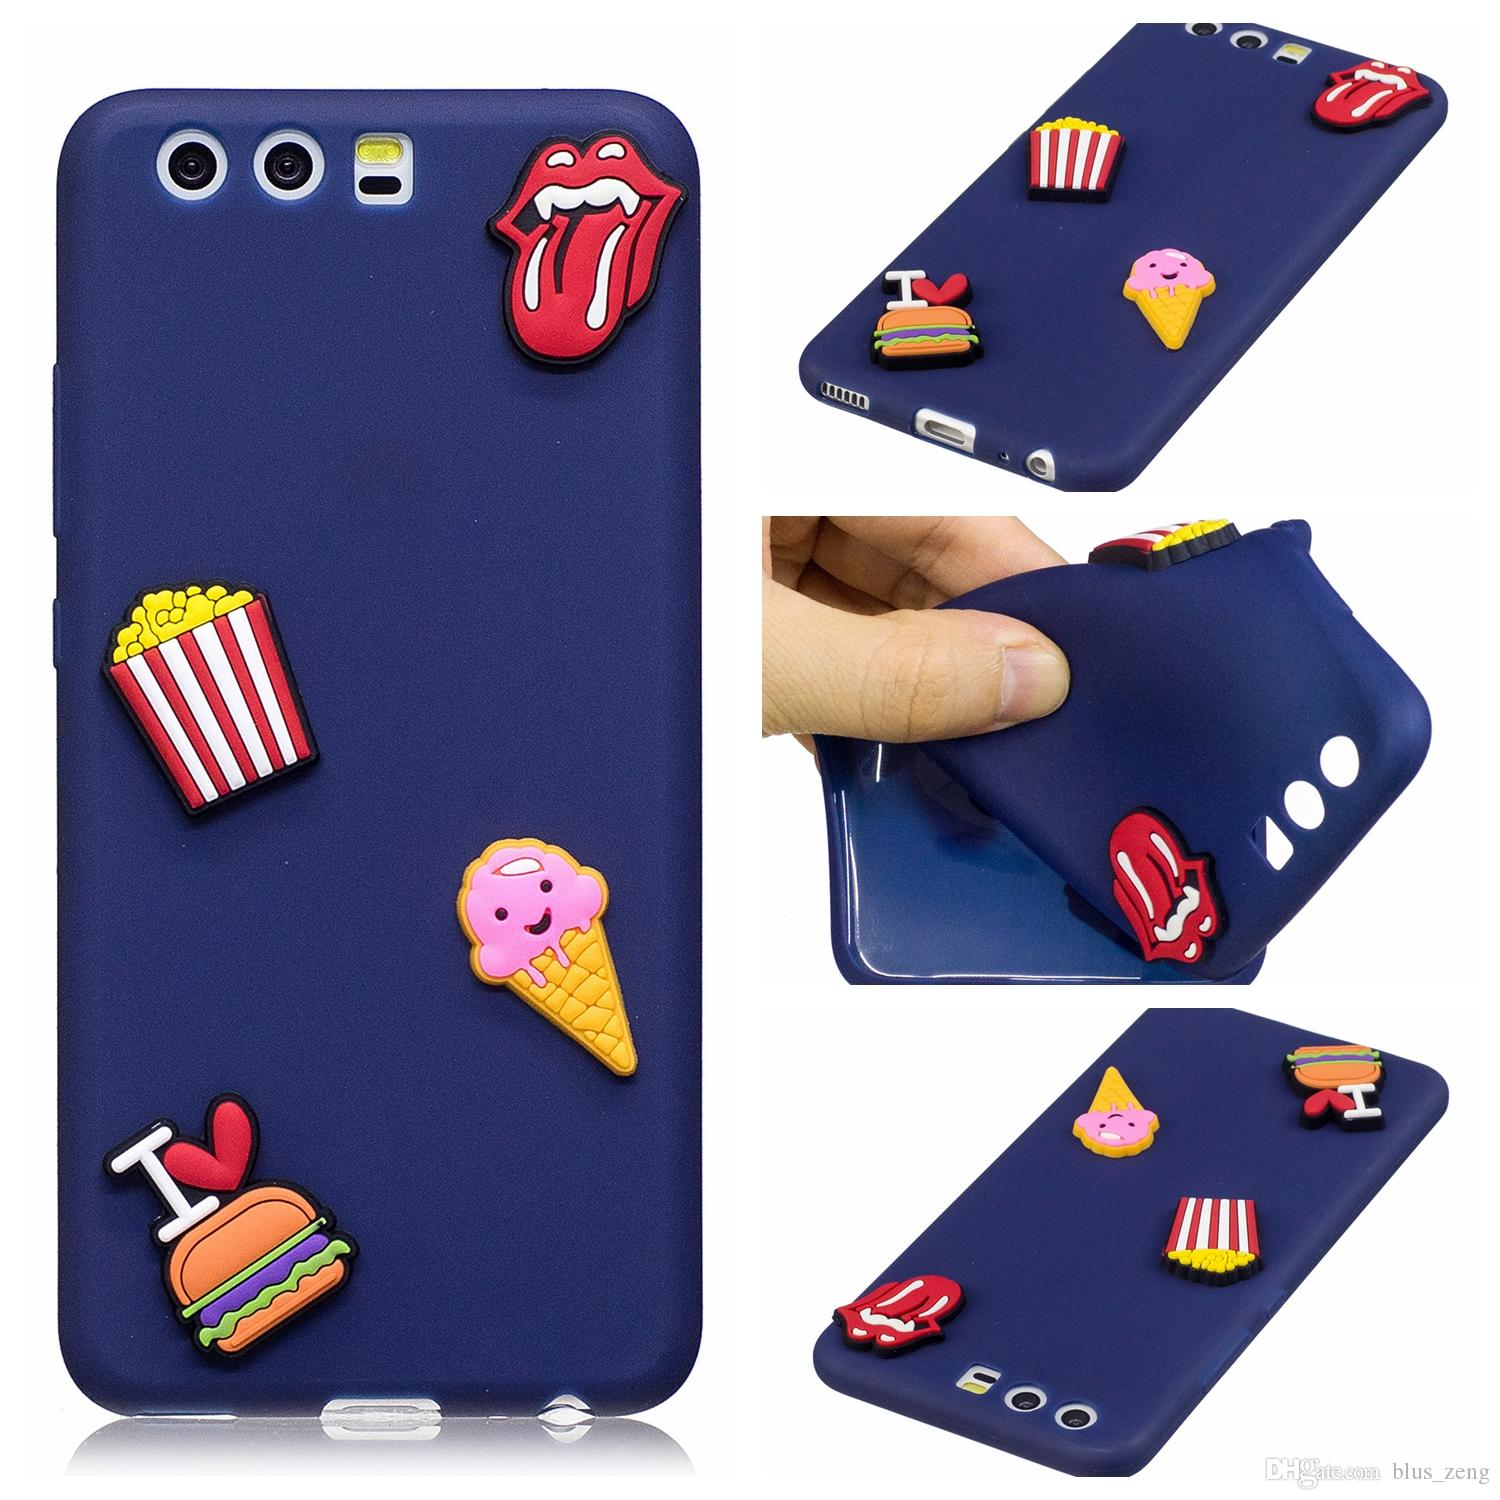 Fashion Candy Colors 3d Soft And Flexible Silicone Rubber Phone Case For Huawei P10 P10 Plus Vivo X9 Oppo R9s R9s Plus A59 Cell Phone Cases Phone Case From